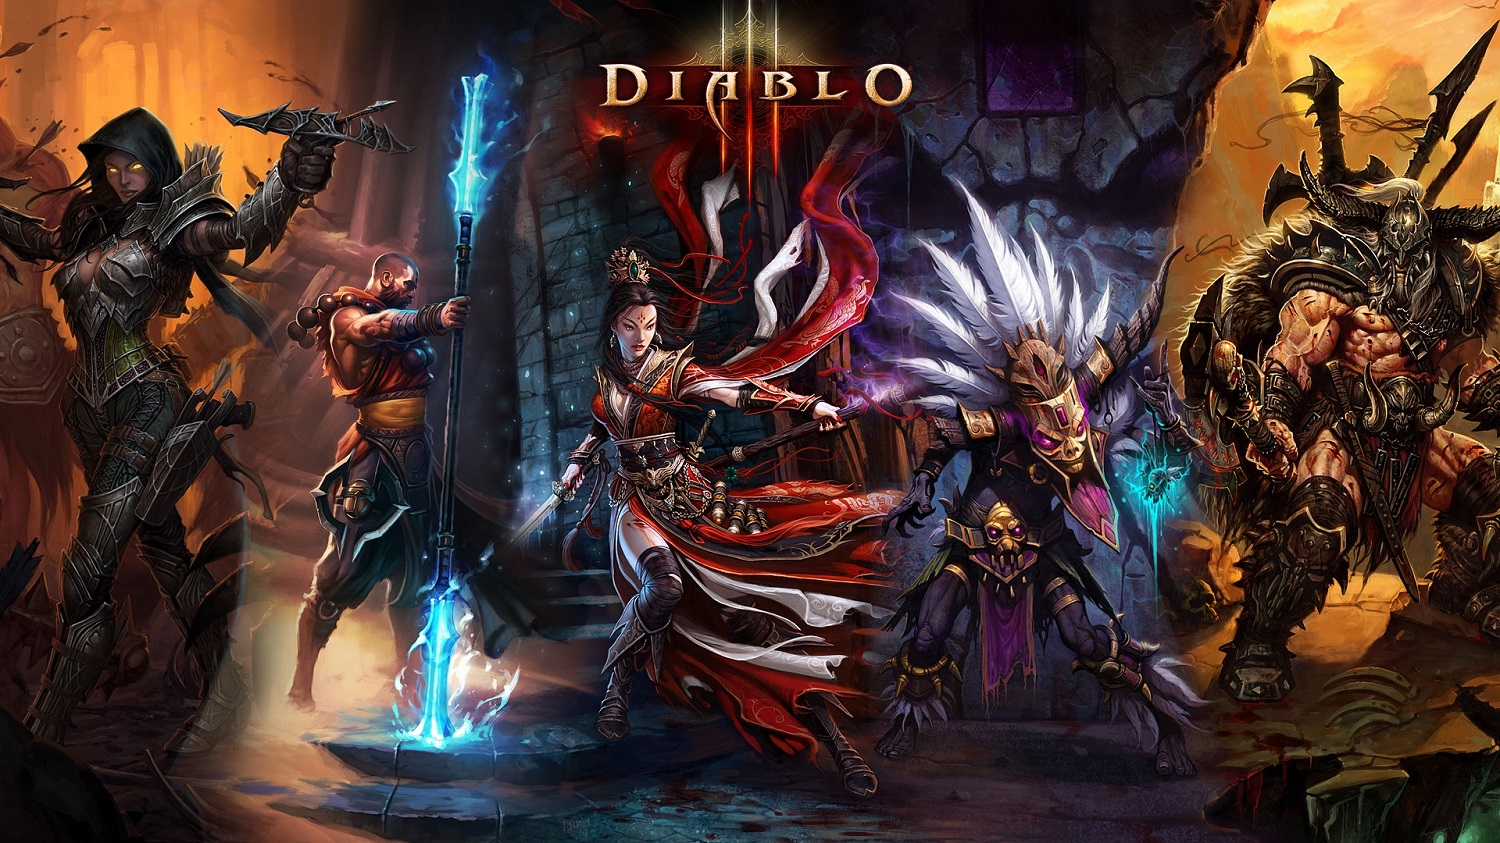 Diablo 3's Patch 1.04 Brings the Paragon System